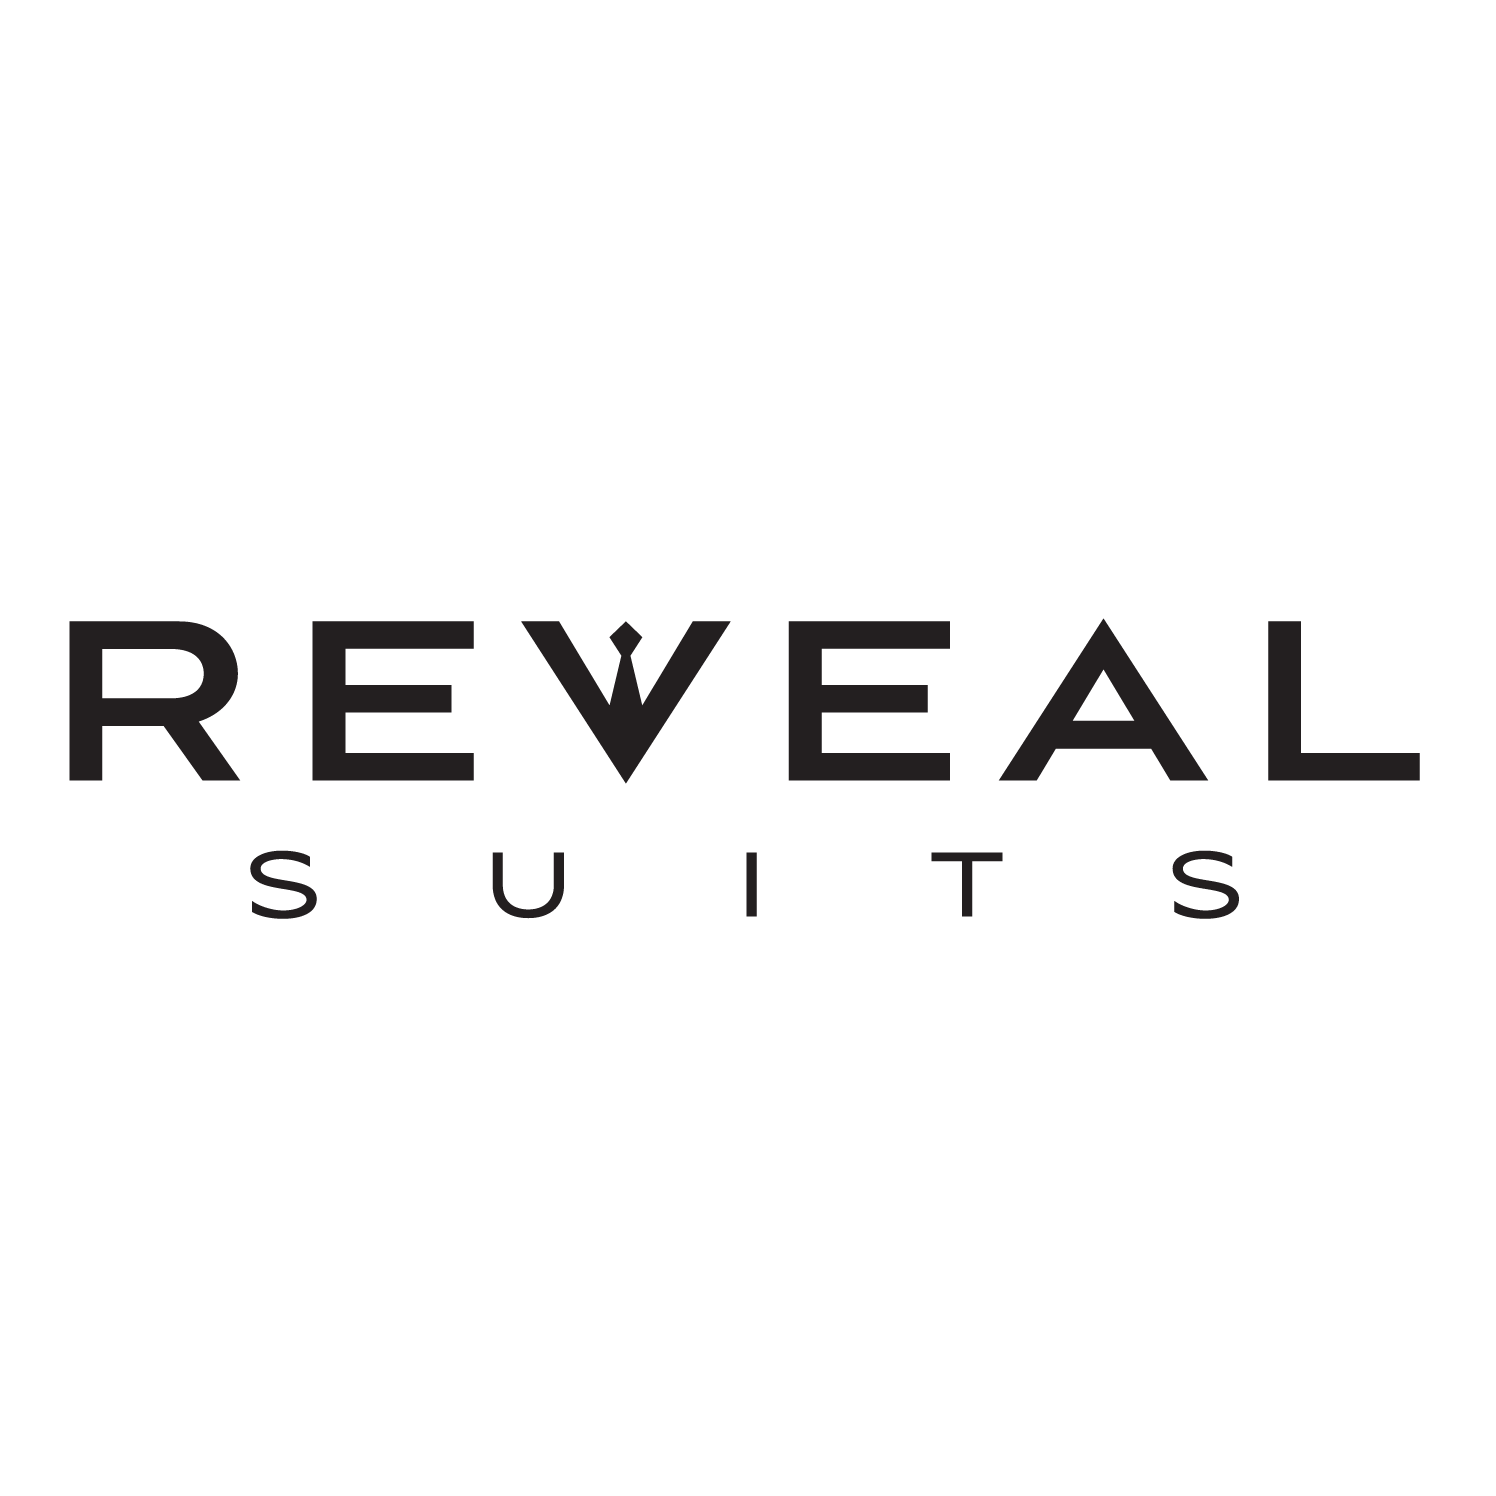 Reveal_Suits_Logo_Black_Primary_Zoom